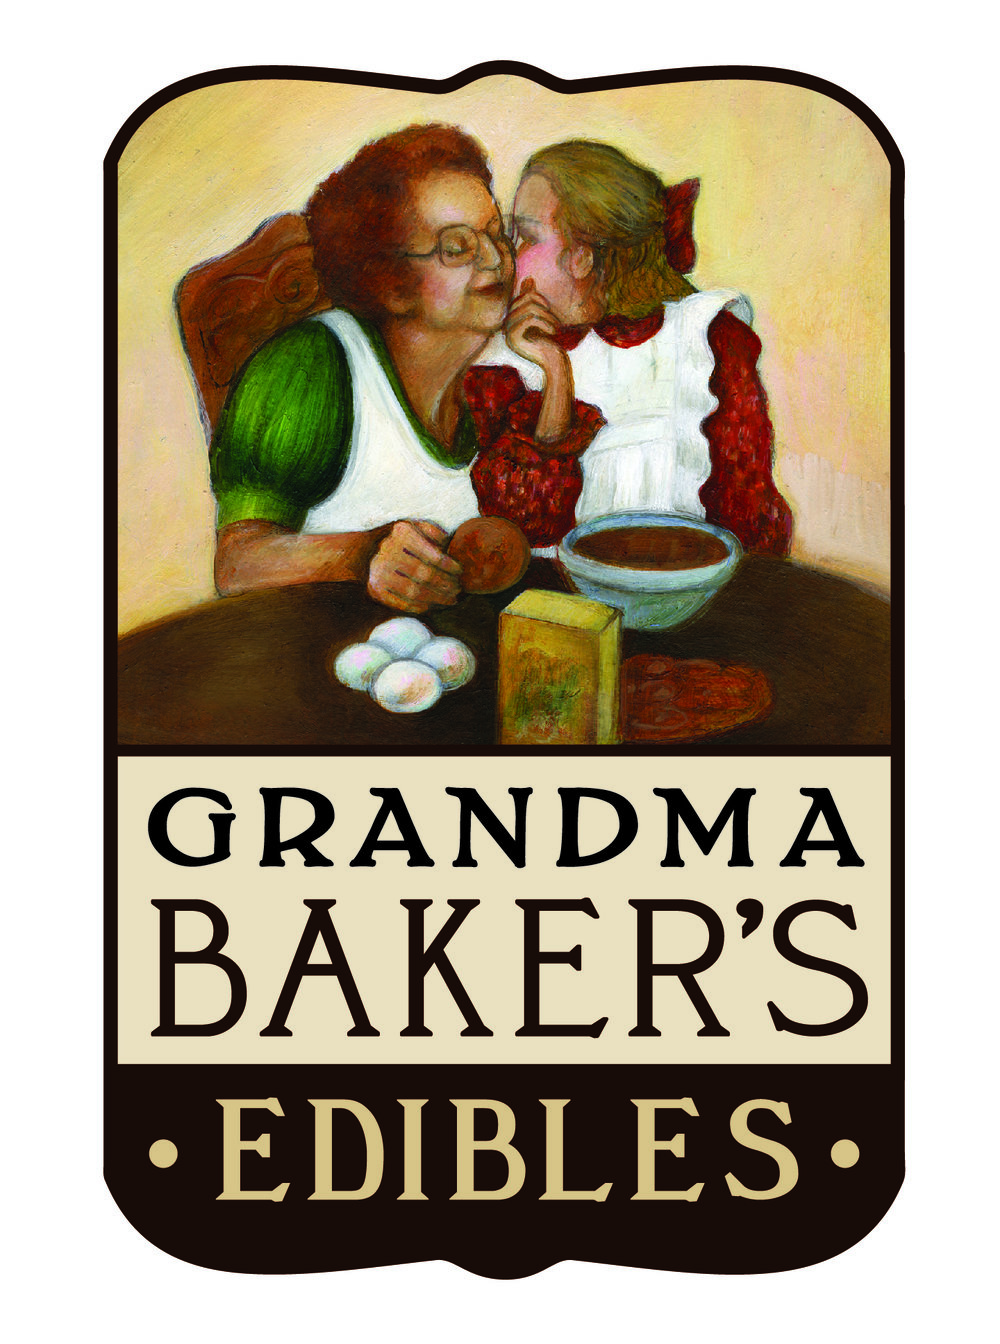 GrandmaBakers Logo_BoxColorEDIBLES.jpg